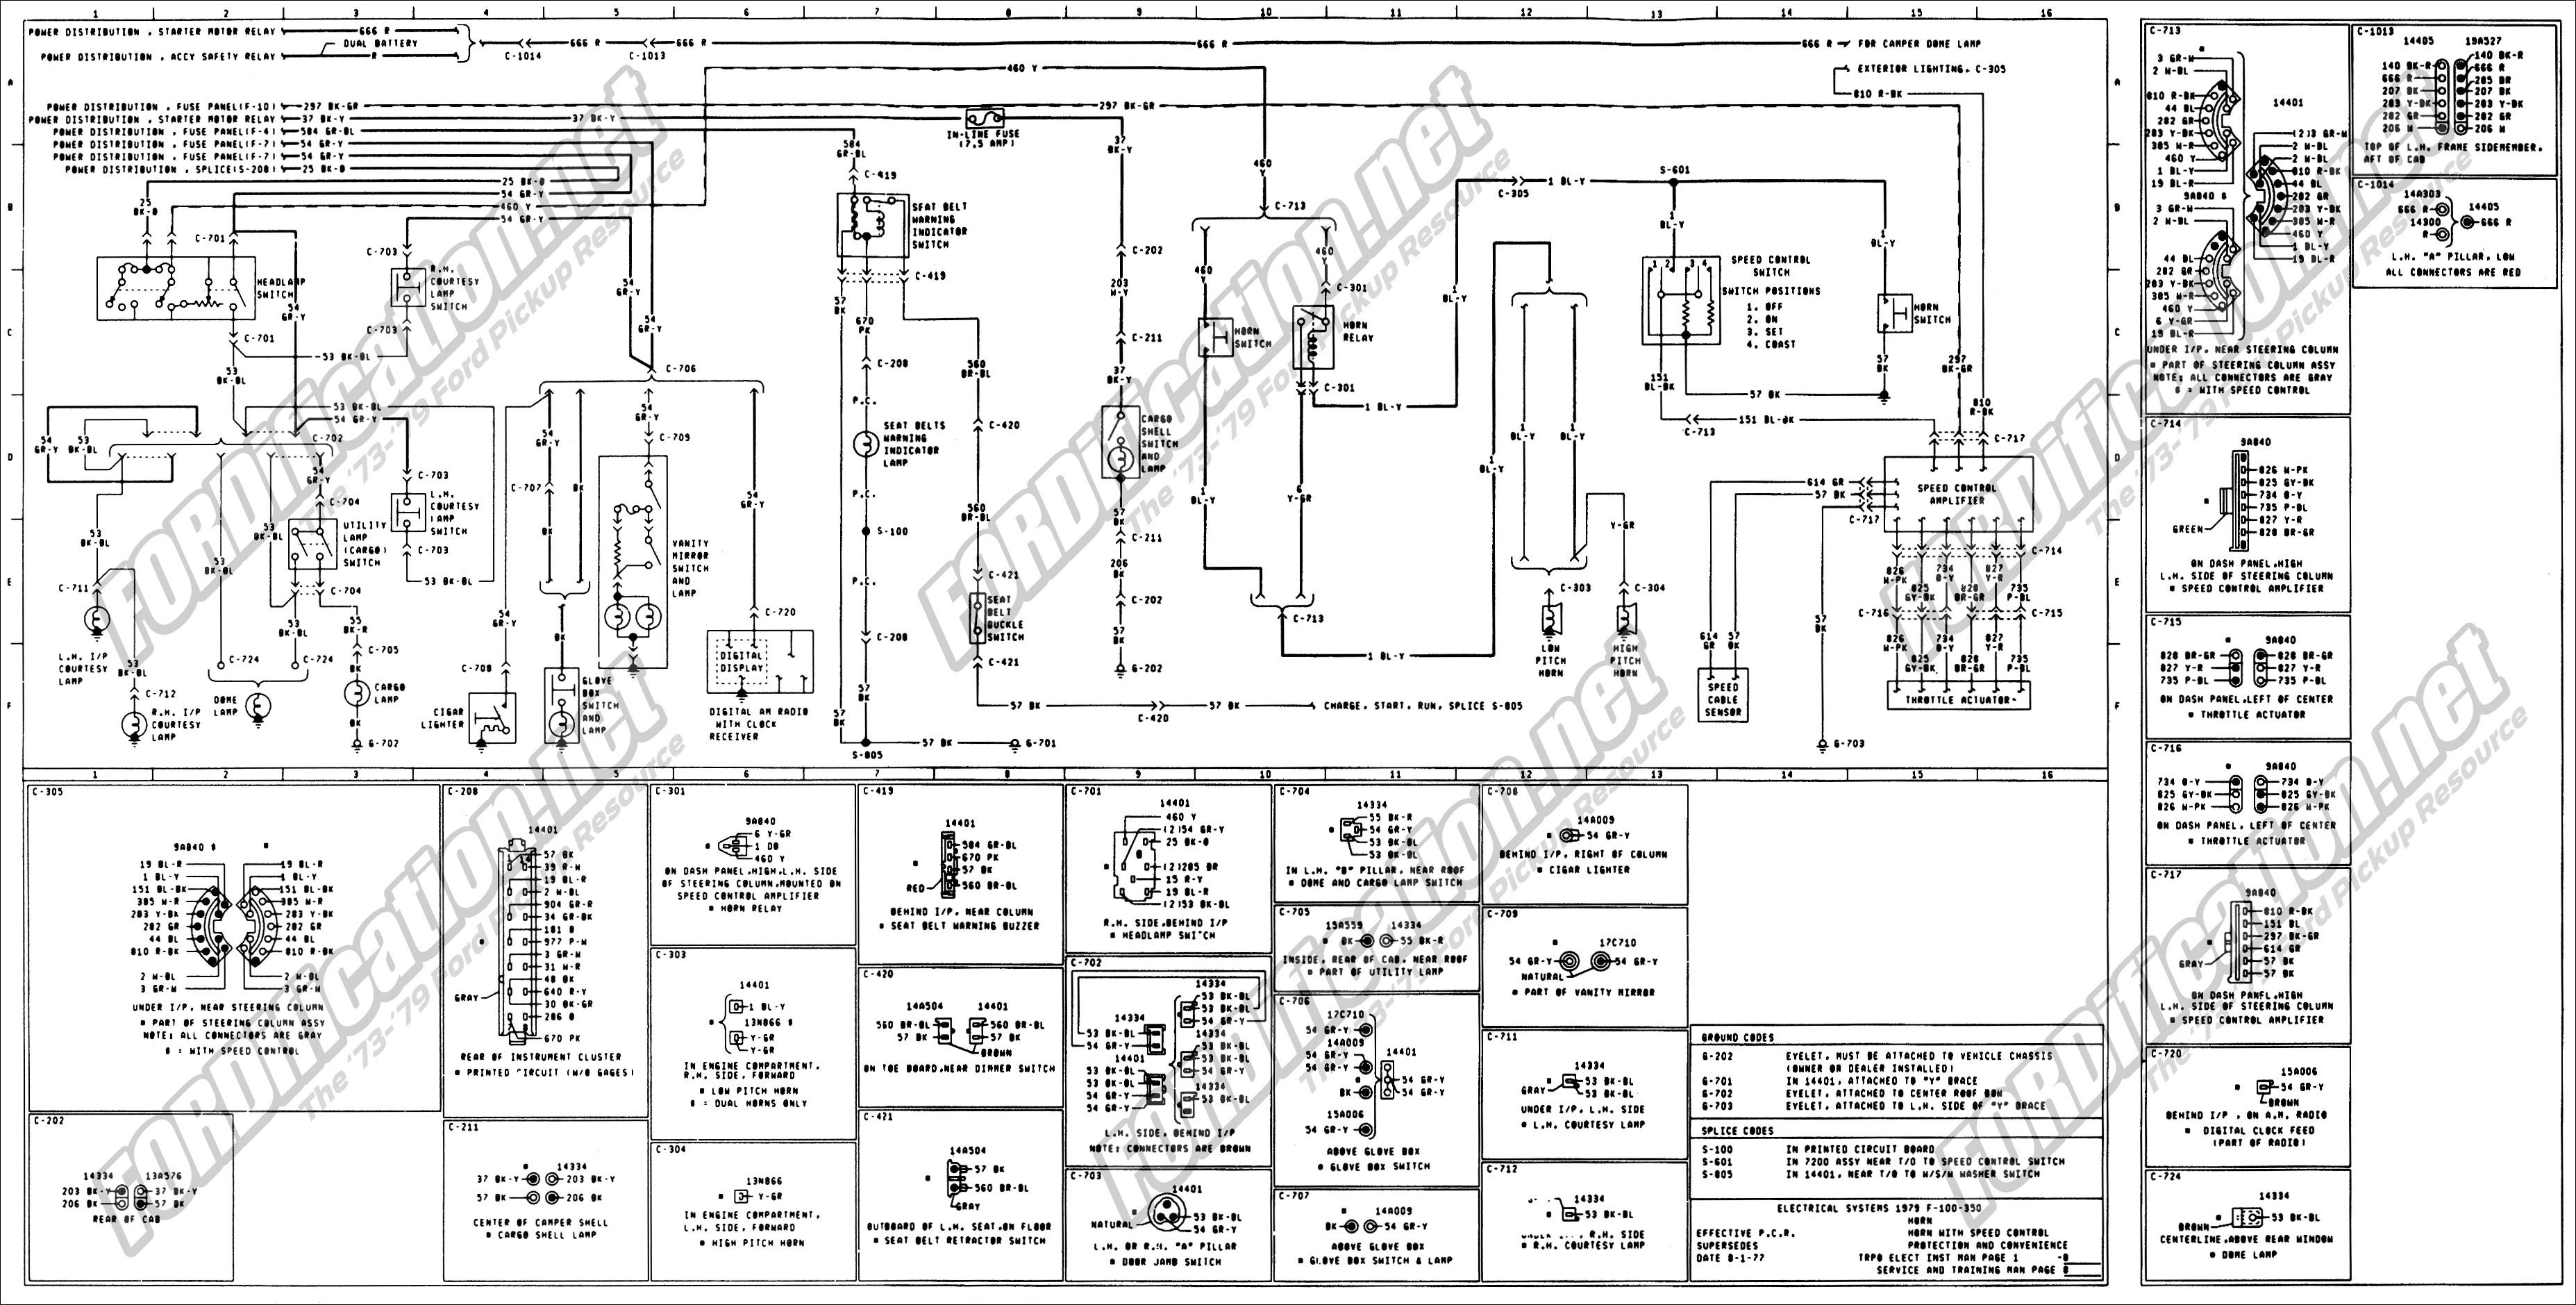 1976 F250 Wiring Diagram - All Wiring Diagram Data - Ford F250 Wiring Diagram For Trailer Lights